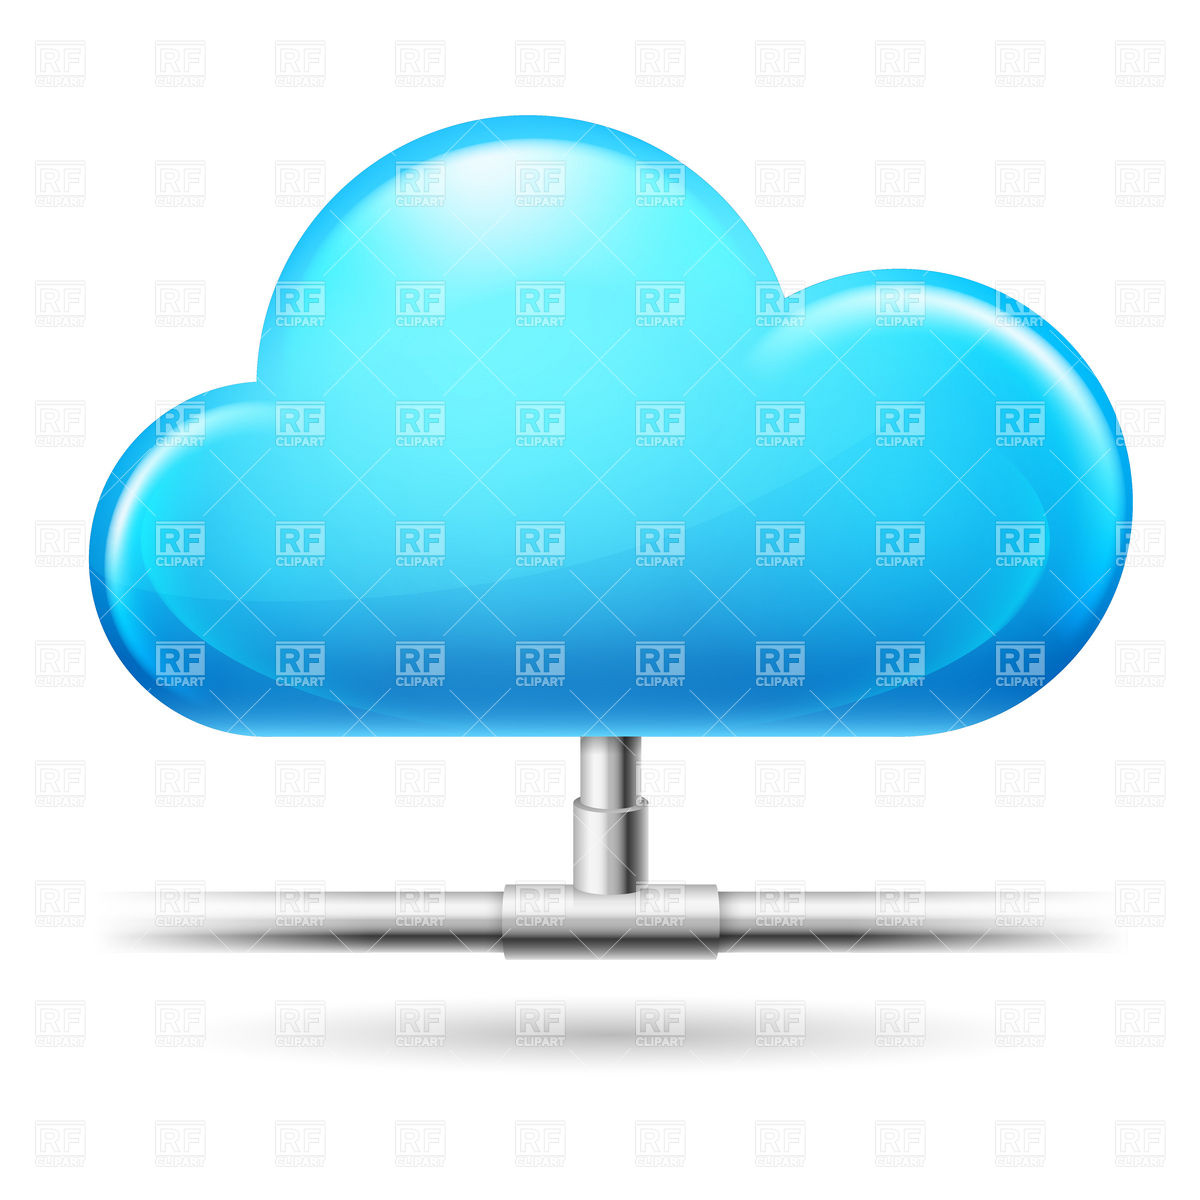 Cloud computing connection icon Vector Image #6484.